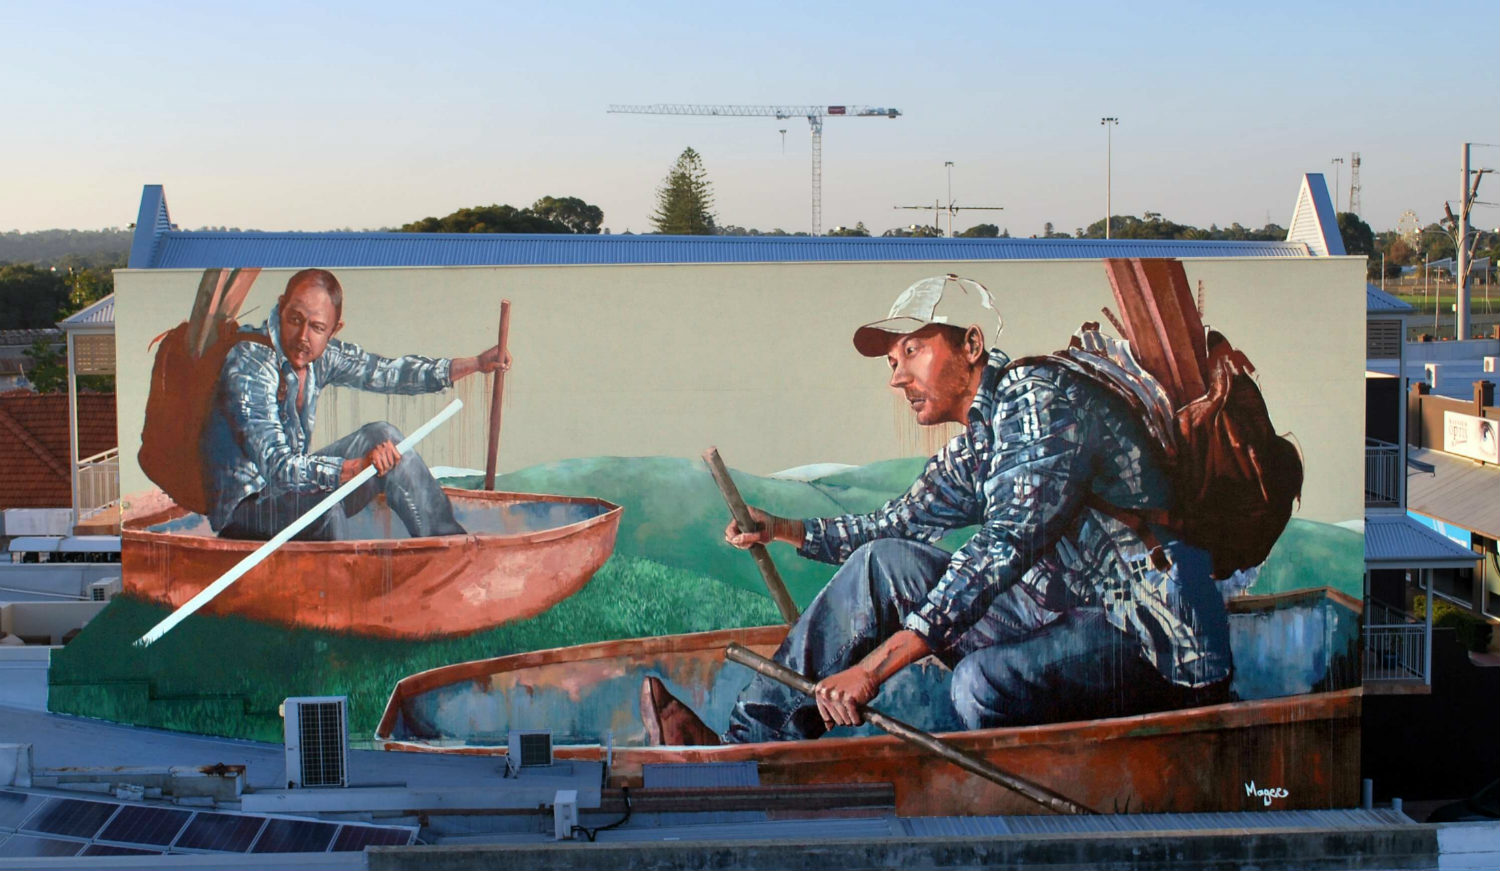 Fintan Magee boating street art in Perth